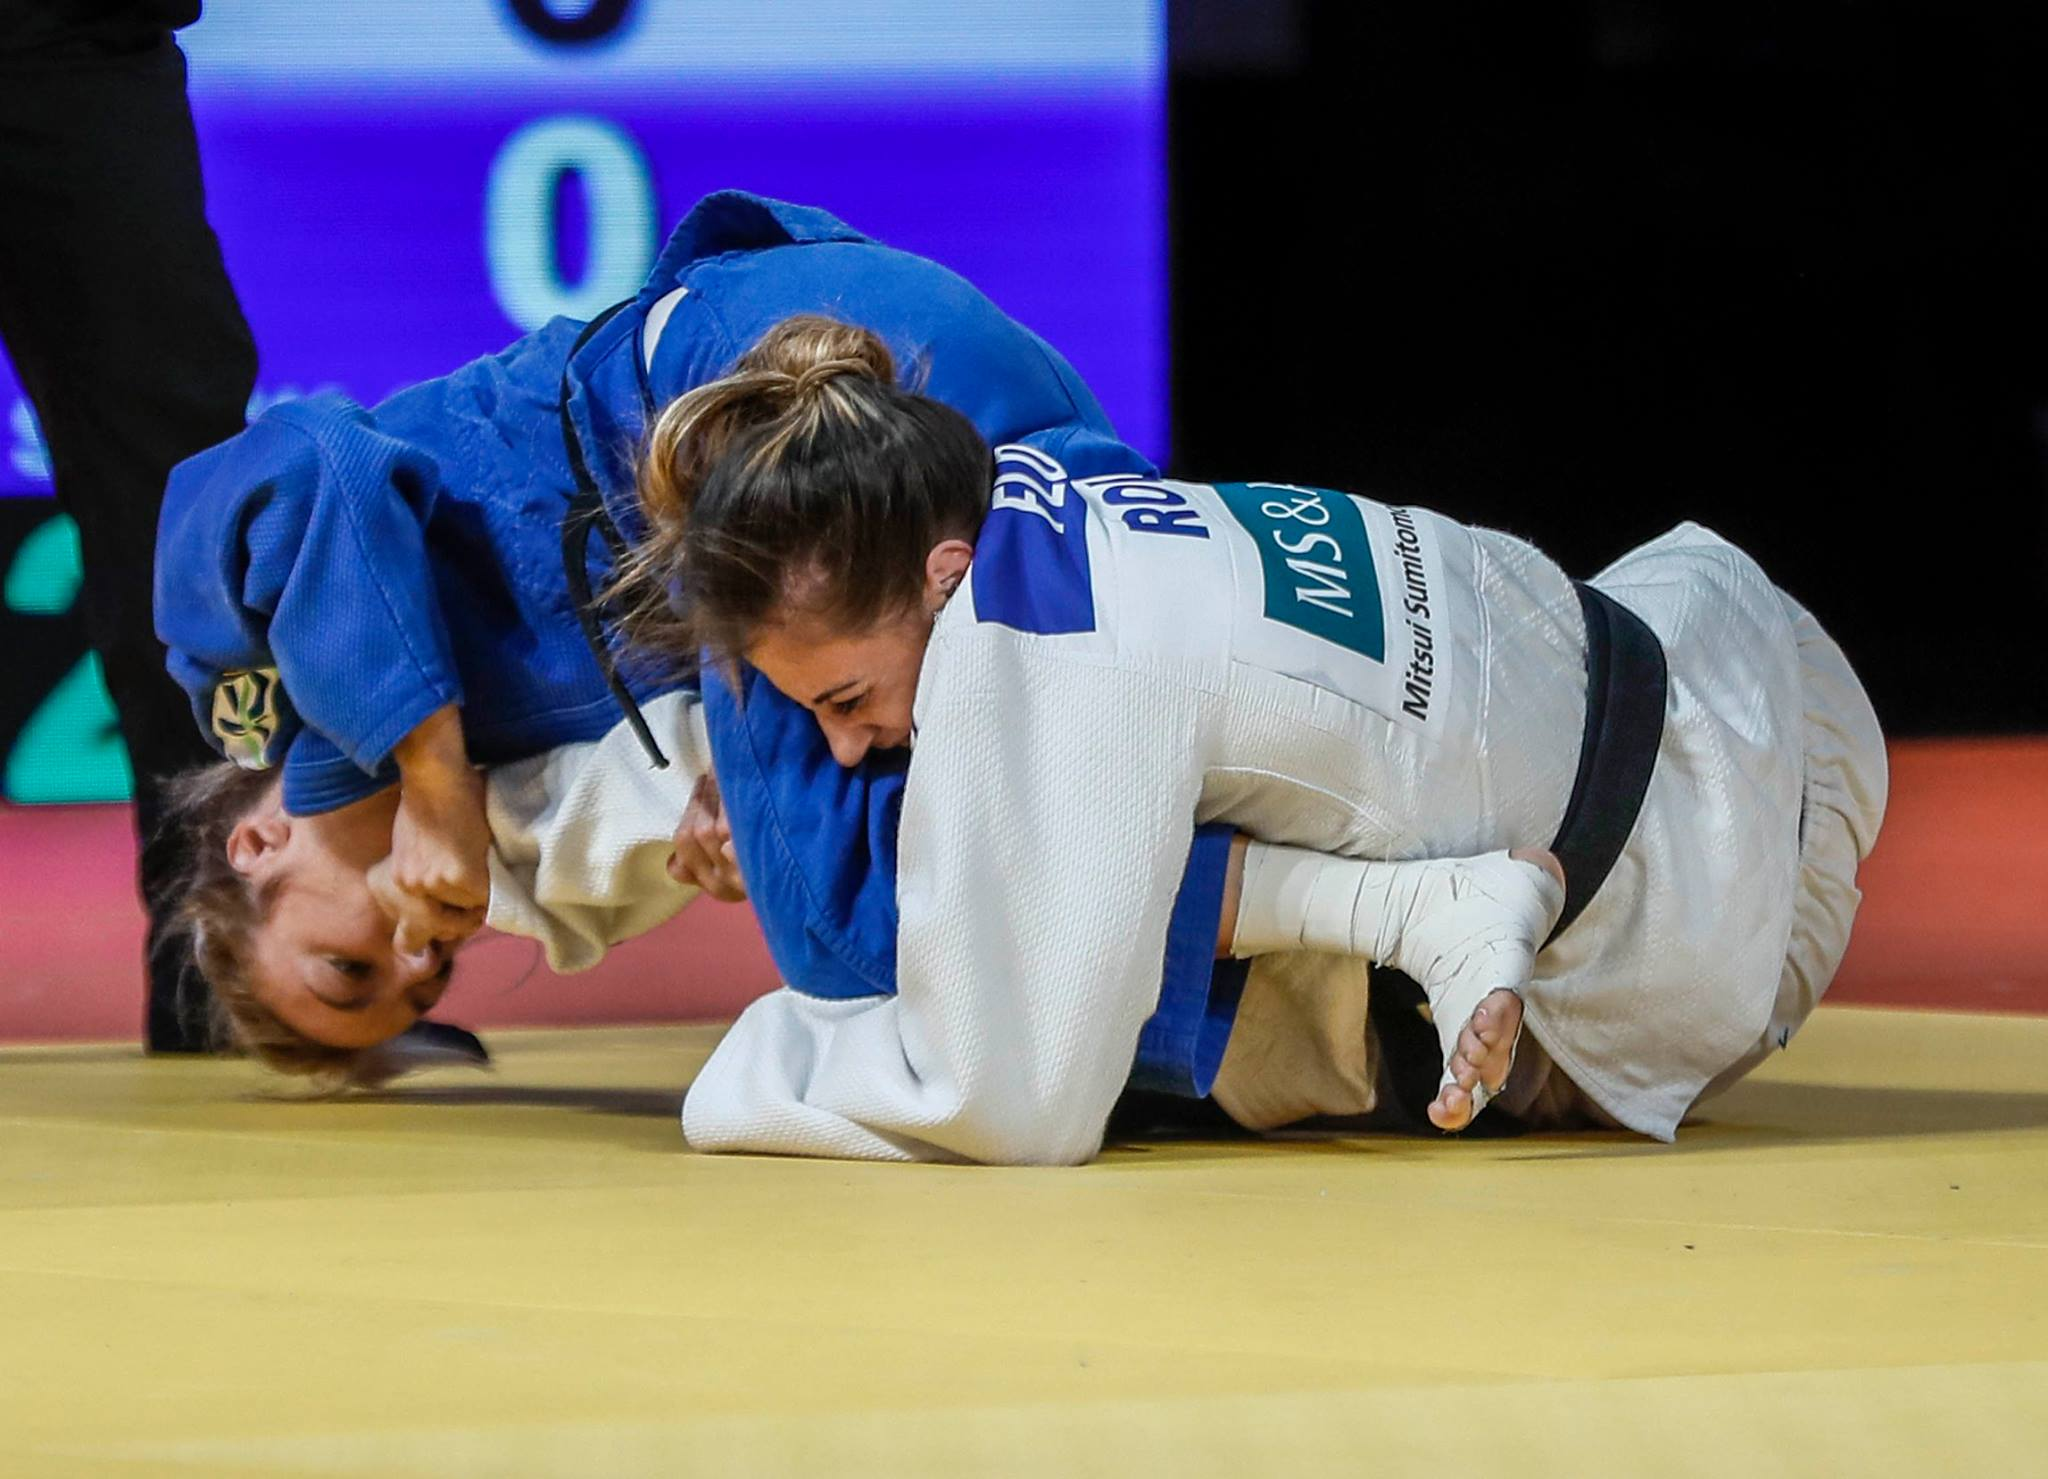 20171026_abudhabi_ijf_action_gs_vansnick